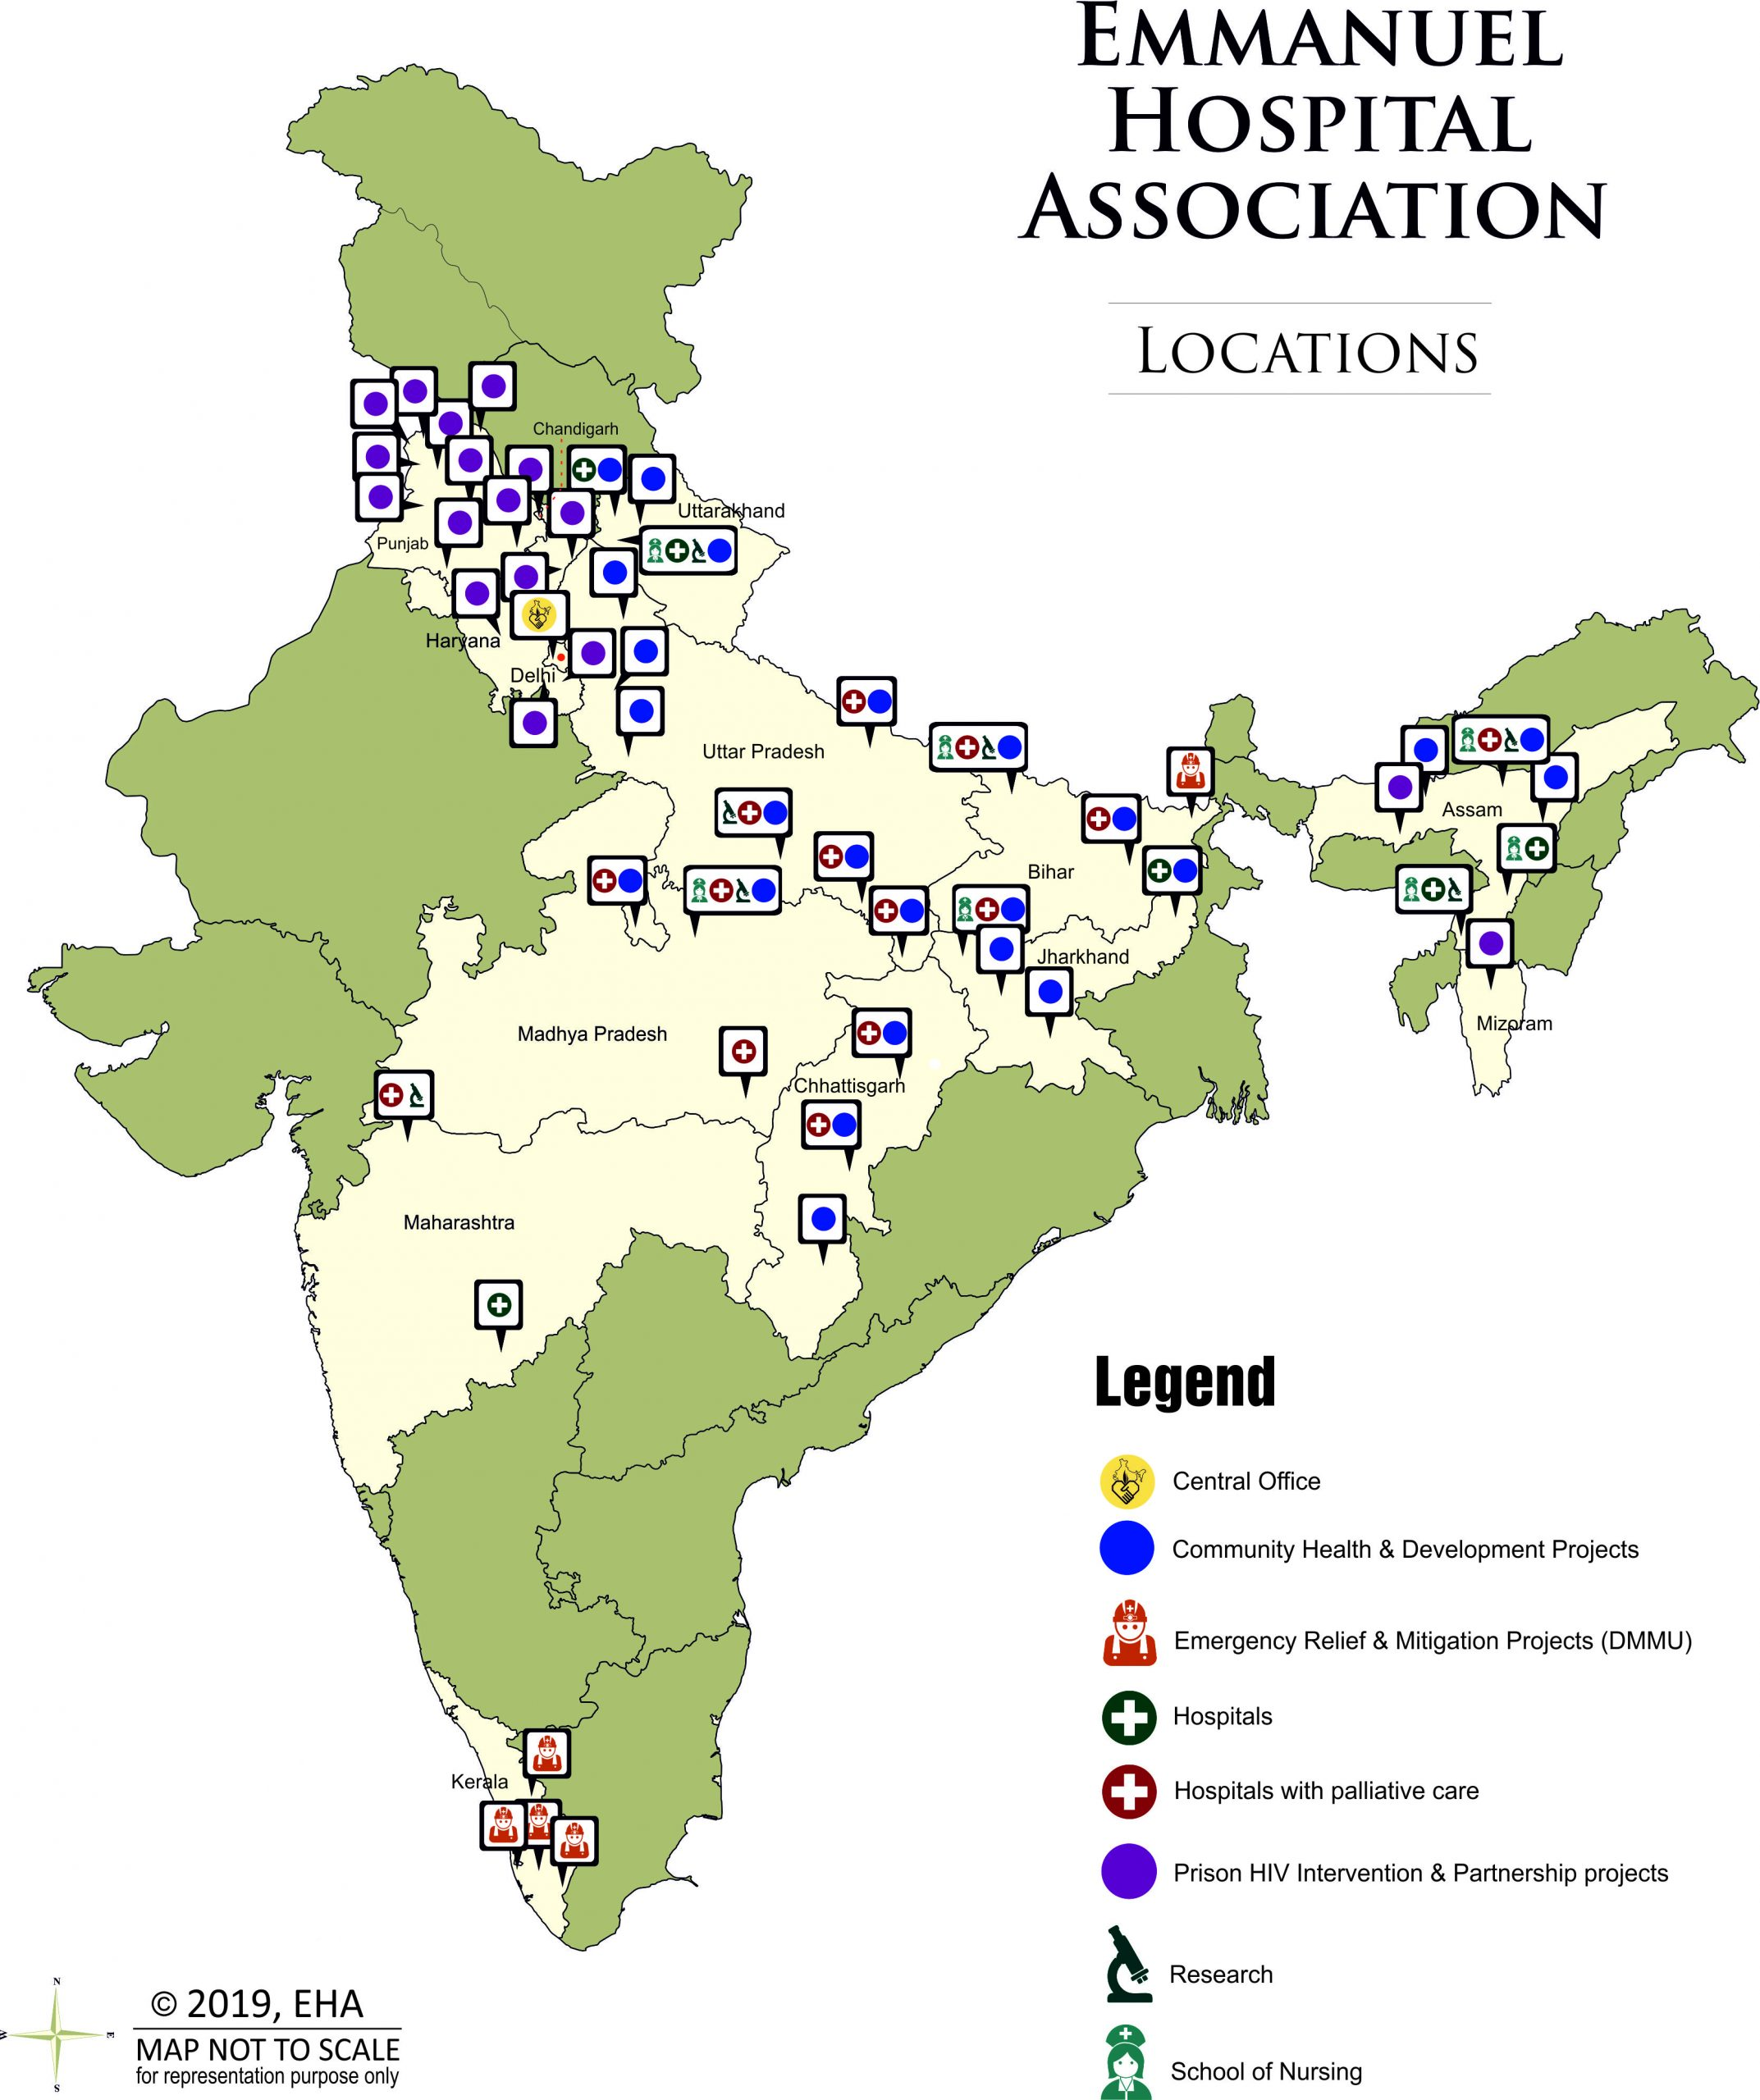 A map of India displays health project of Emmanuel Hospital Association in the country.